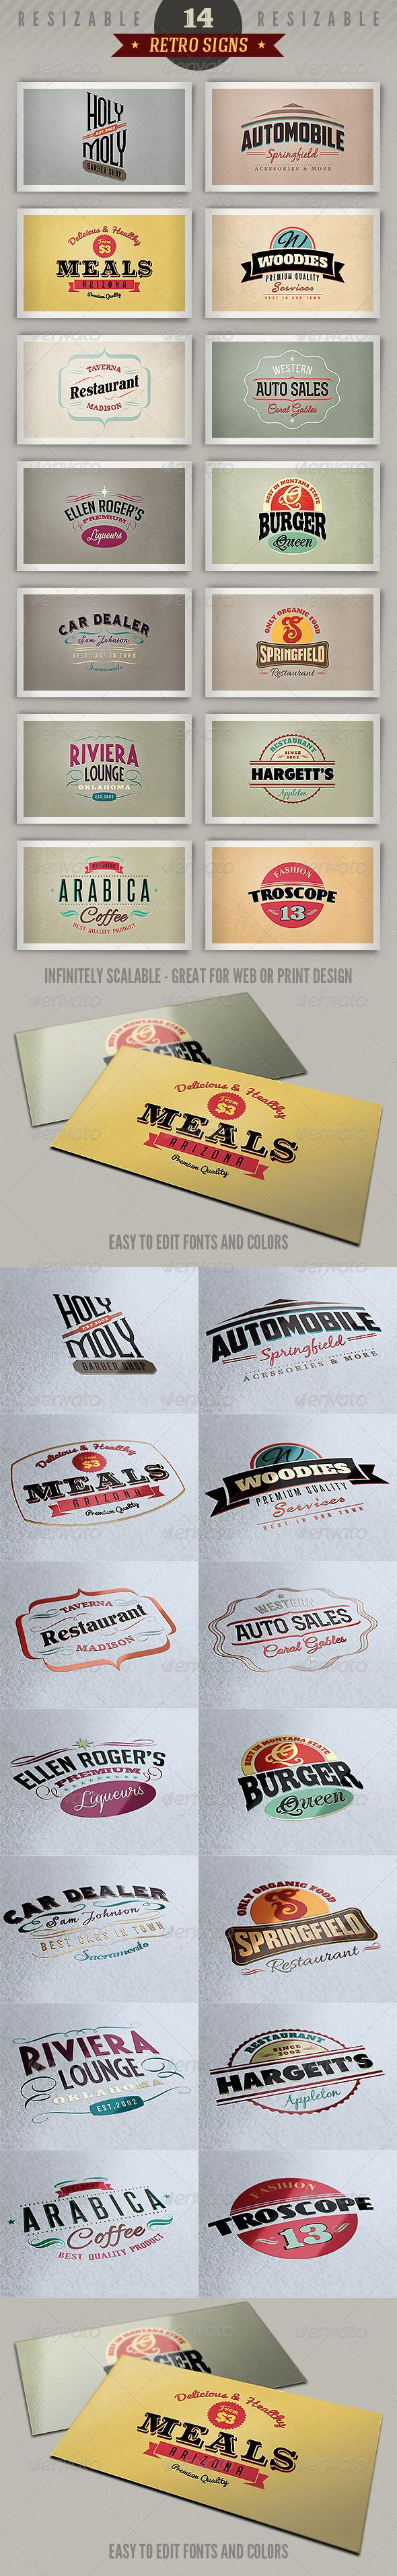 Best sellers premium fonts page 248 urban fonts - 14 Retro Signs Or Banners Vol 3